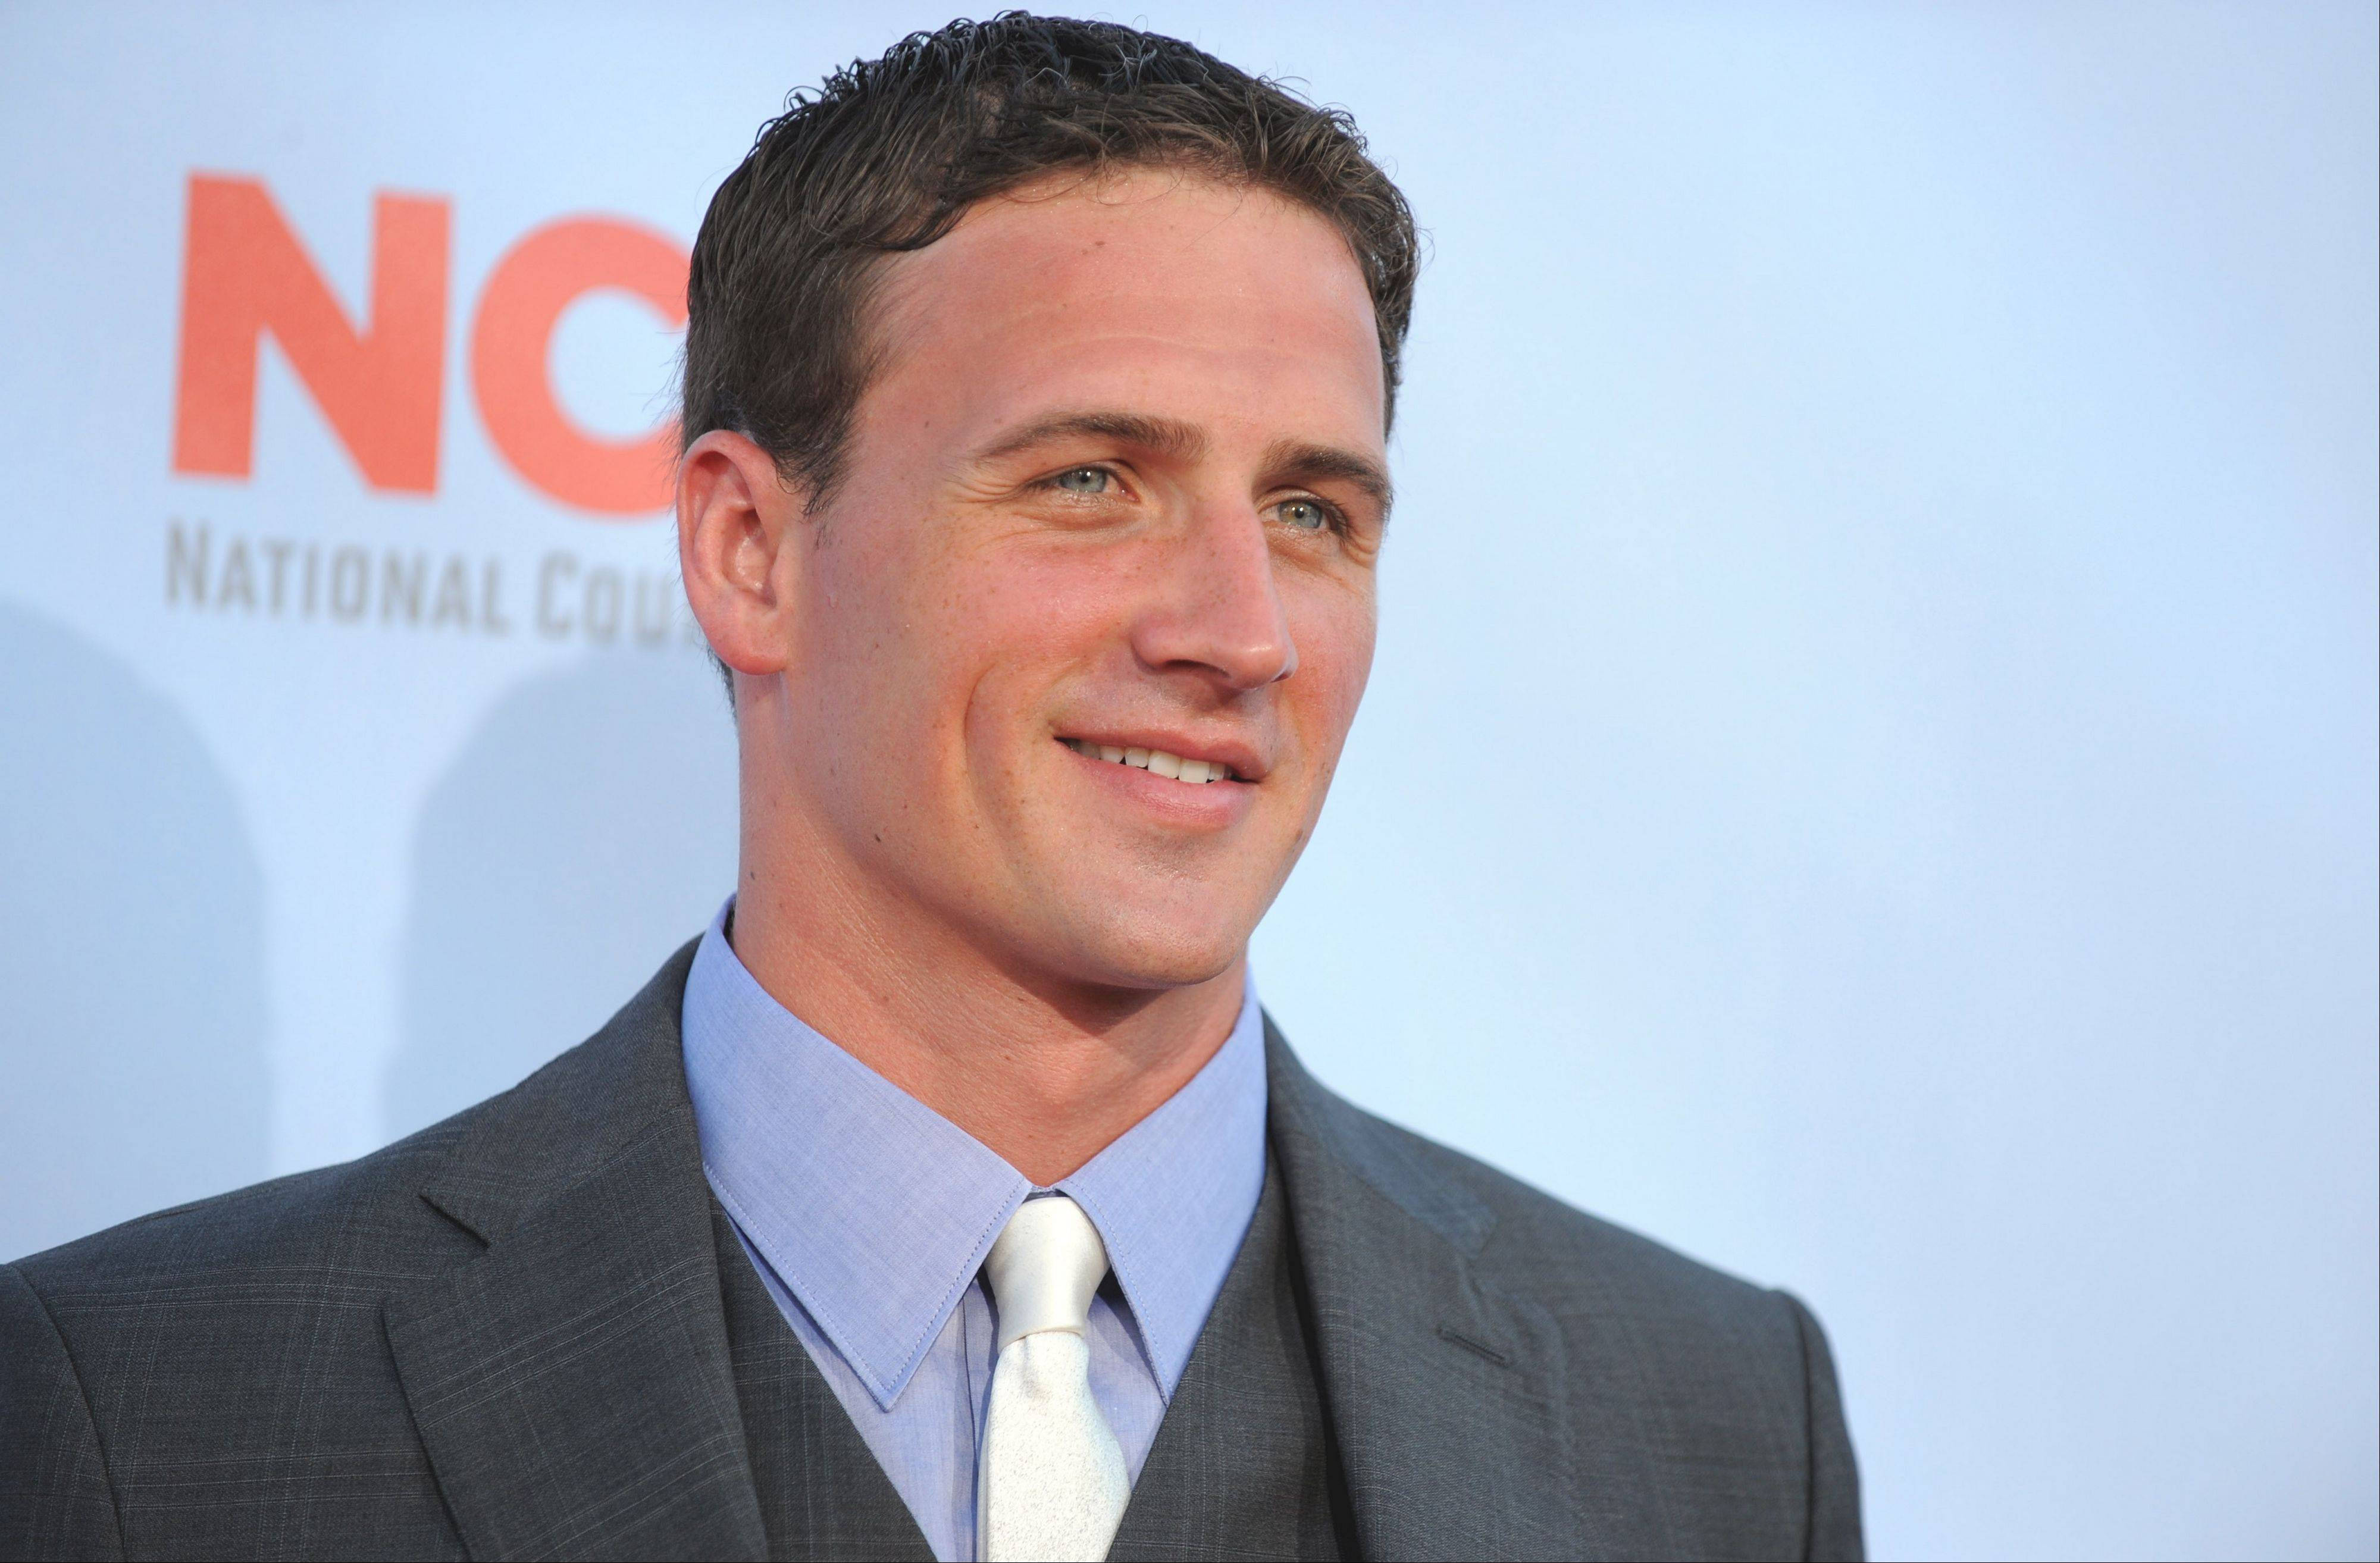 Ryan Lochte has parlayed the five medals he won at the 2012 Olympic Games into a burgeoning media career.